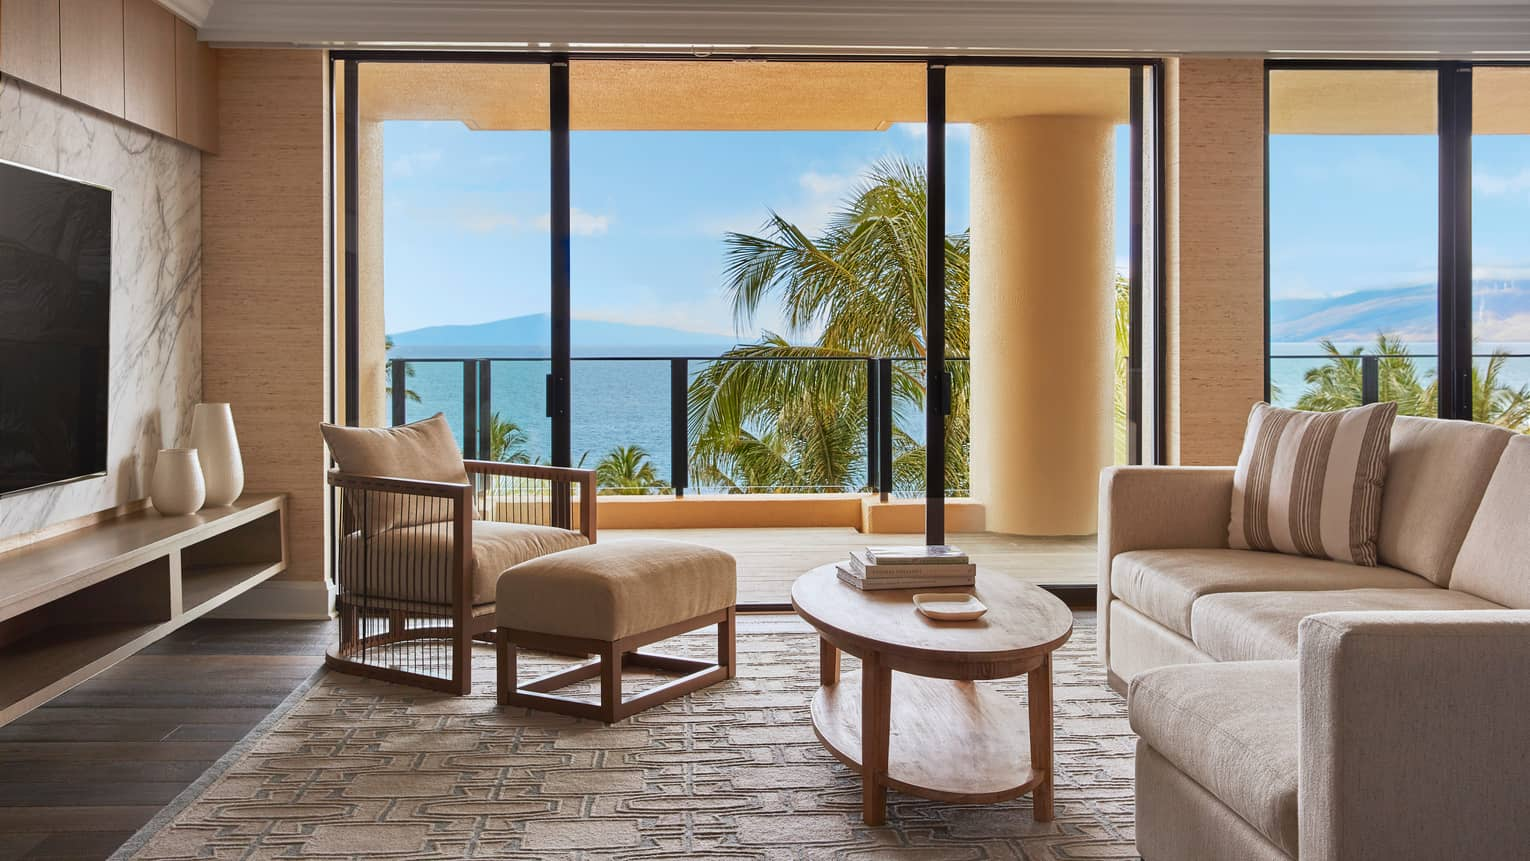 Elite Suite sitting area with doors leading out to a private terrace and a view onto the ocean